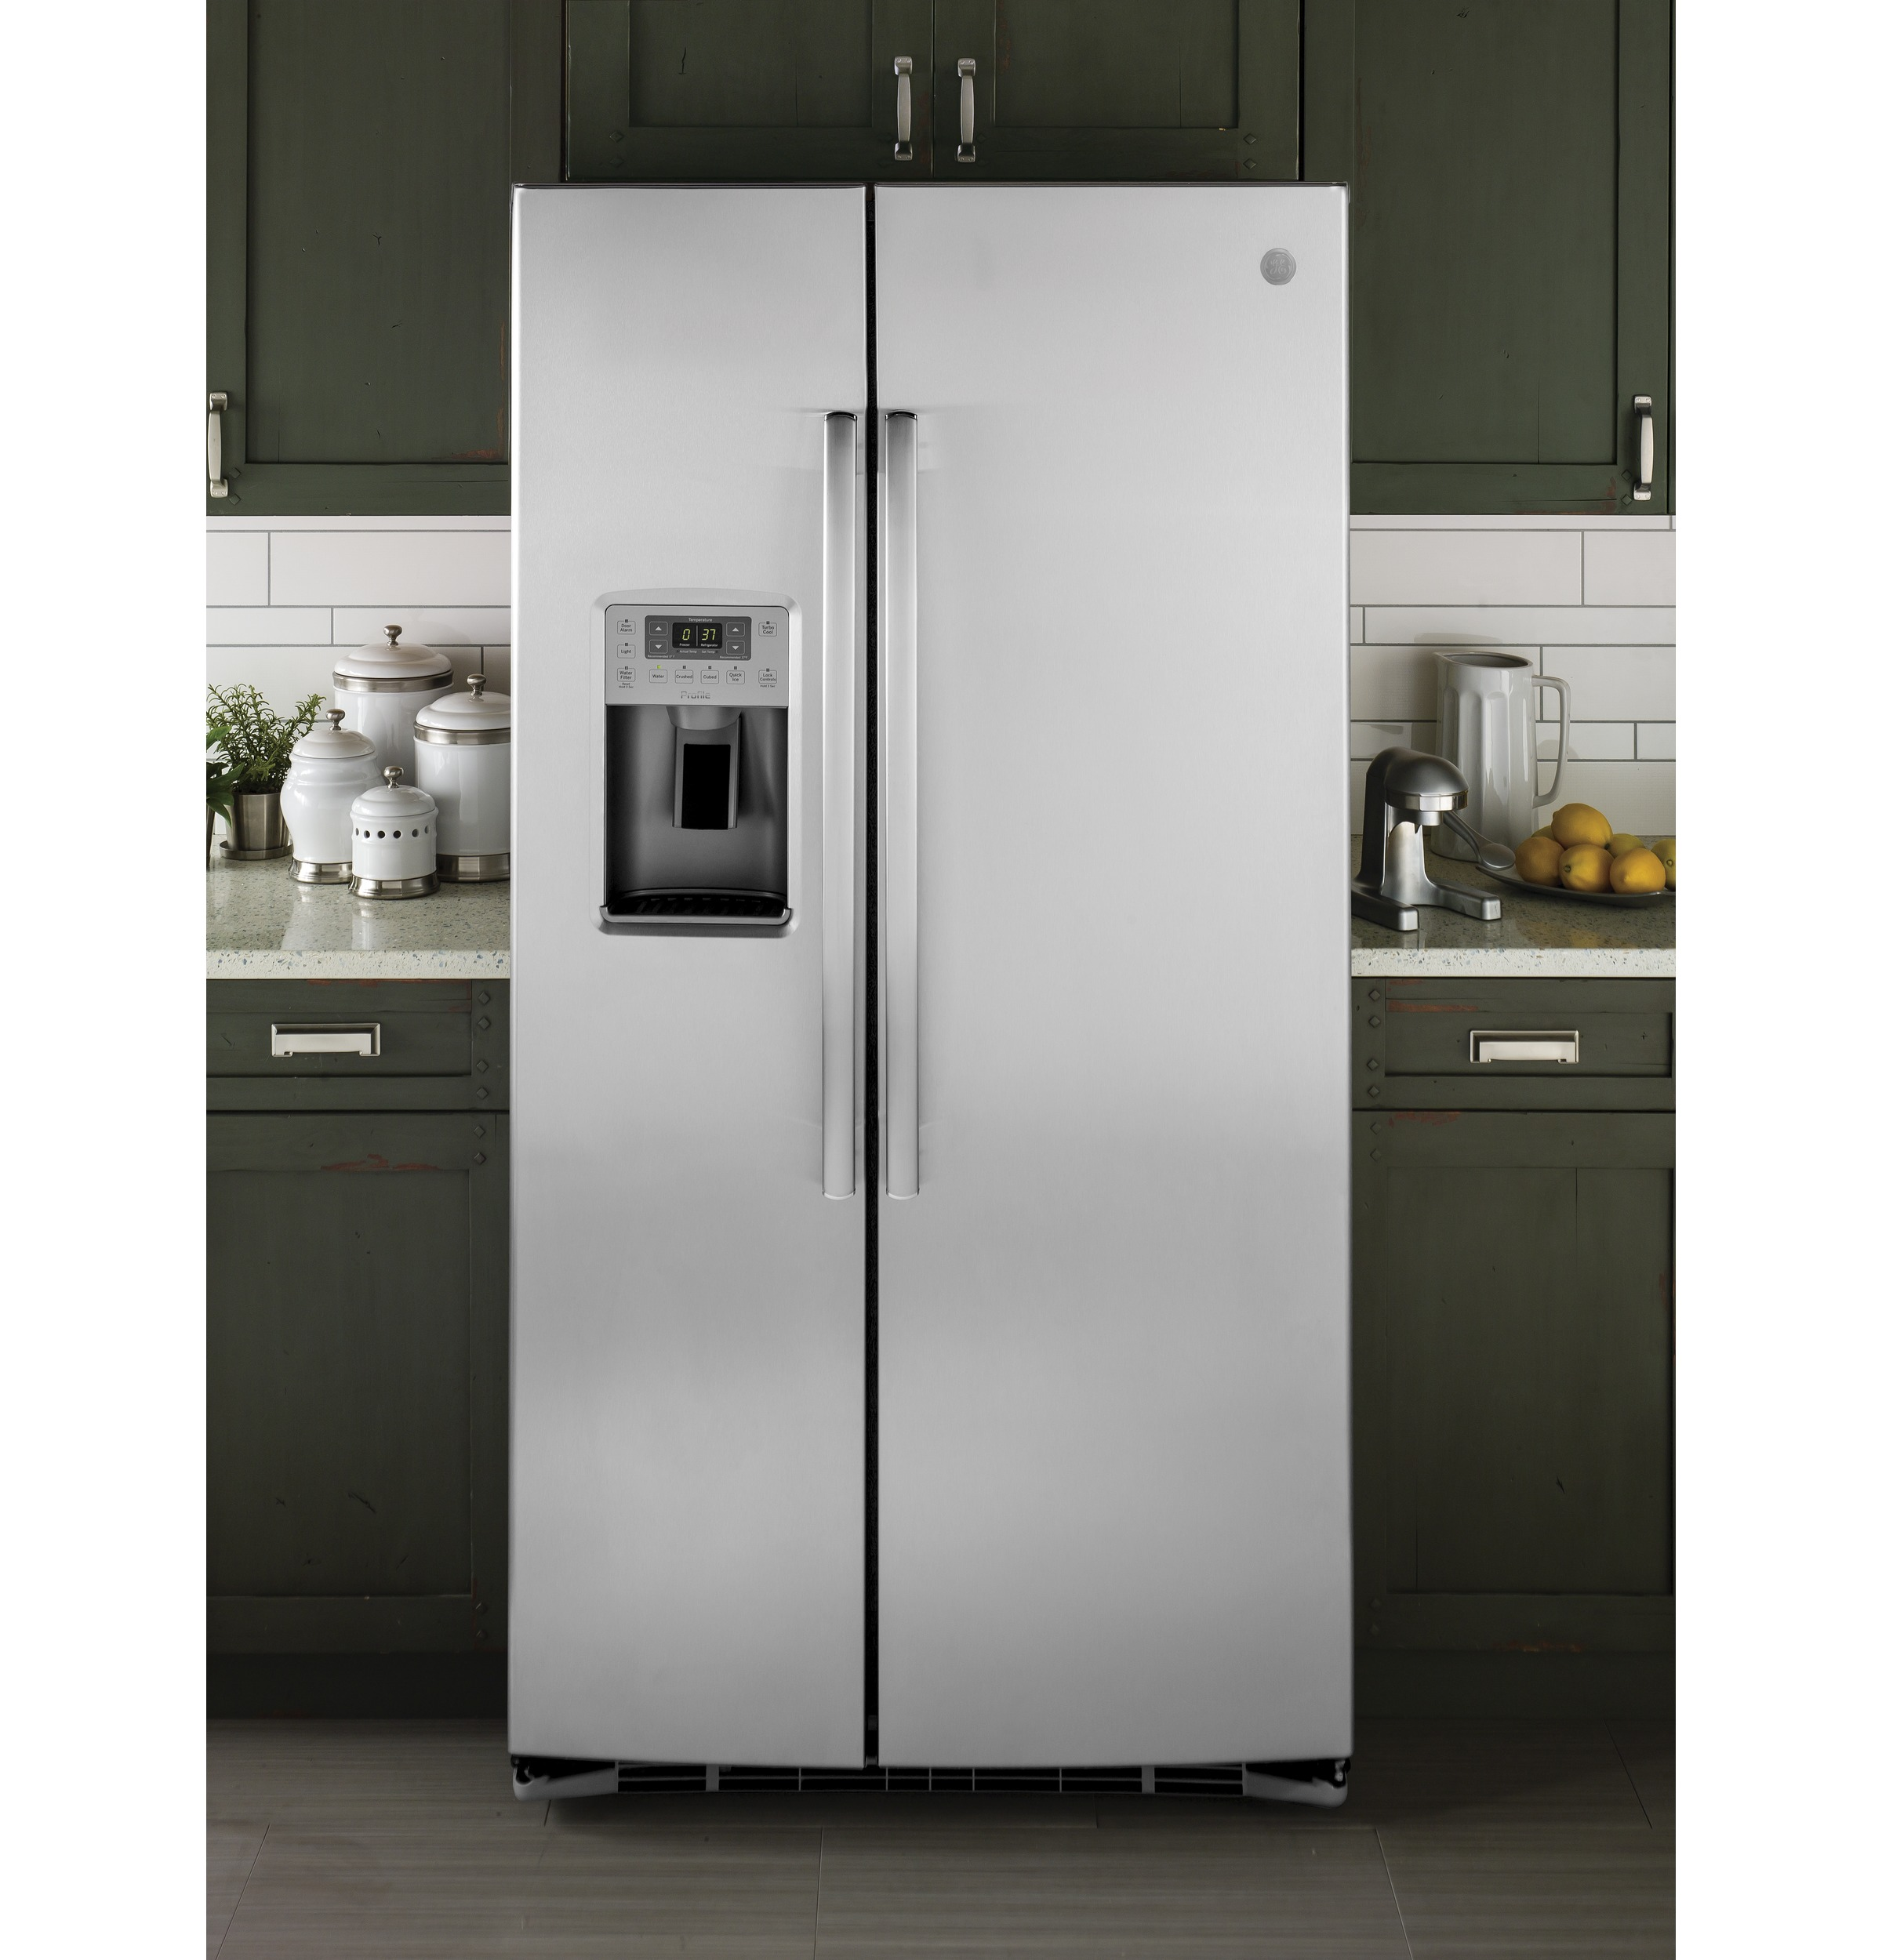 Ge profile series energy star 253 cu ft side by side product image publicscrutiny Gallery